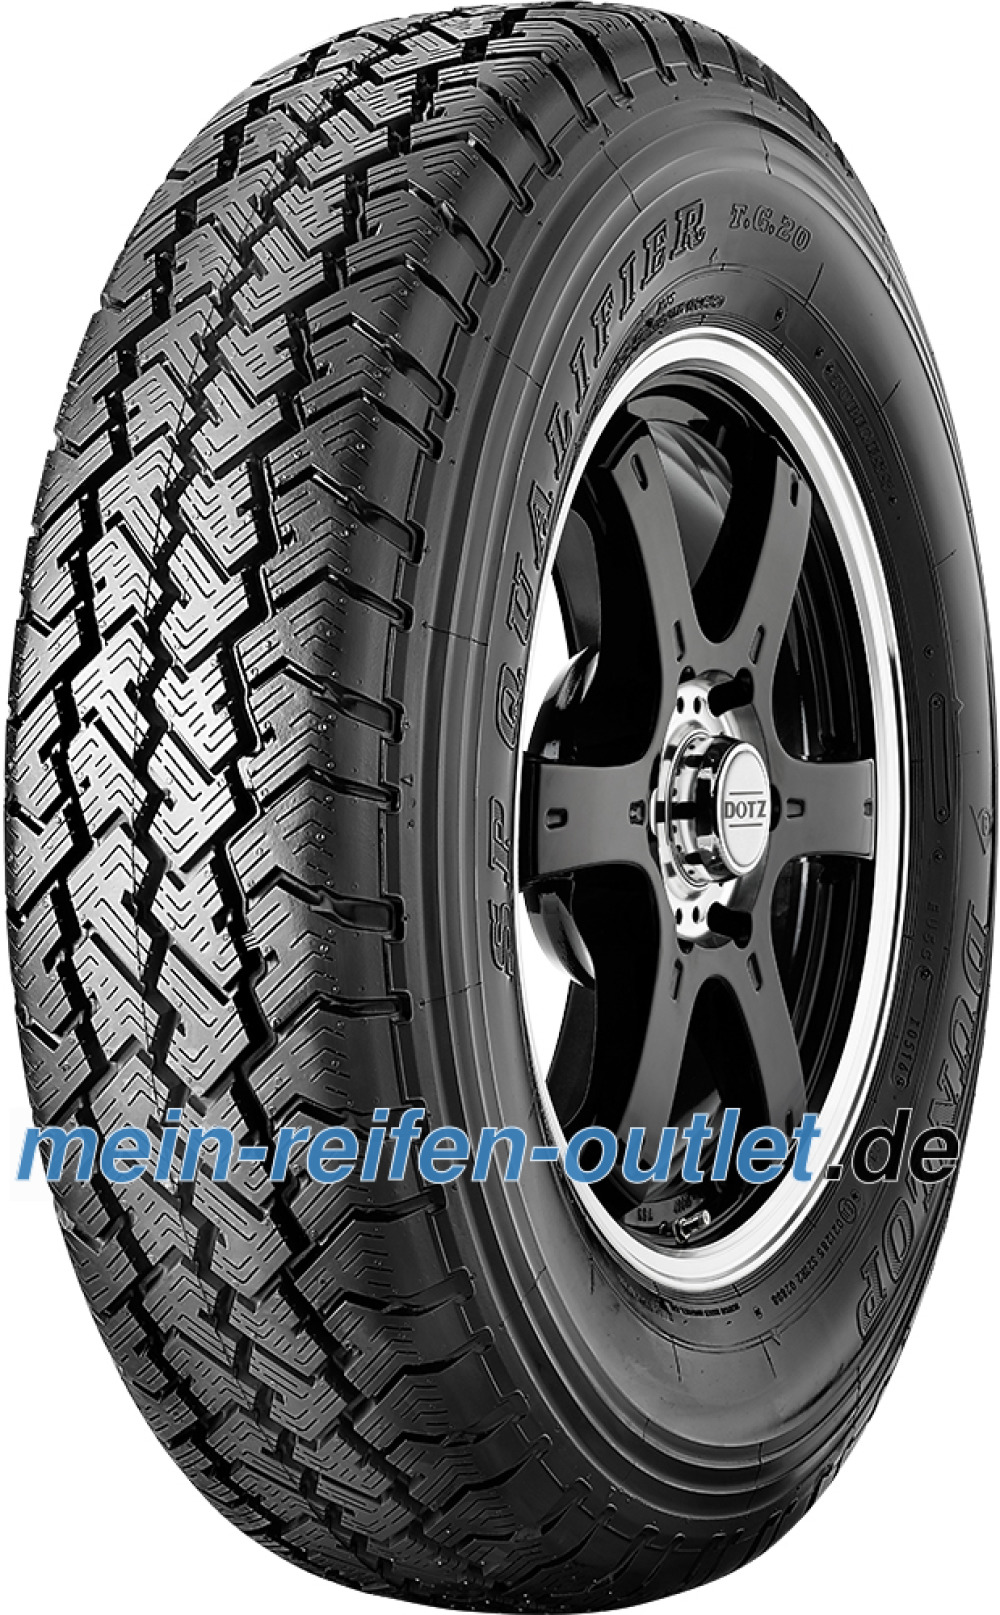 Dunlop SP Qualifier TG 20 ( 215/80 R16 107S XL )